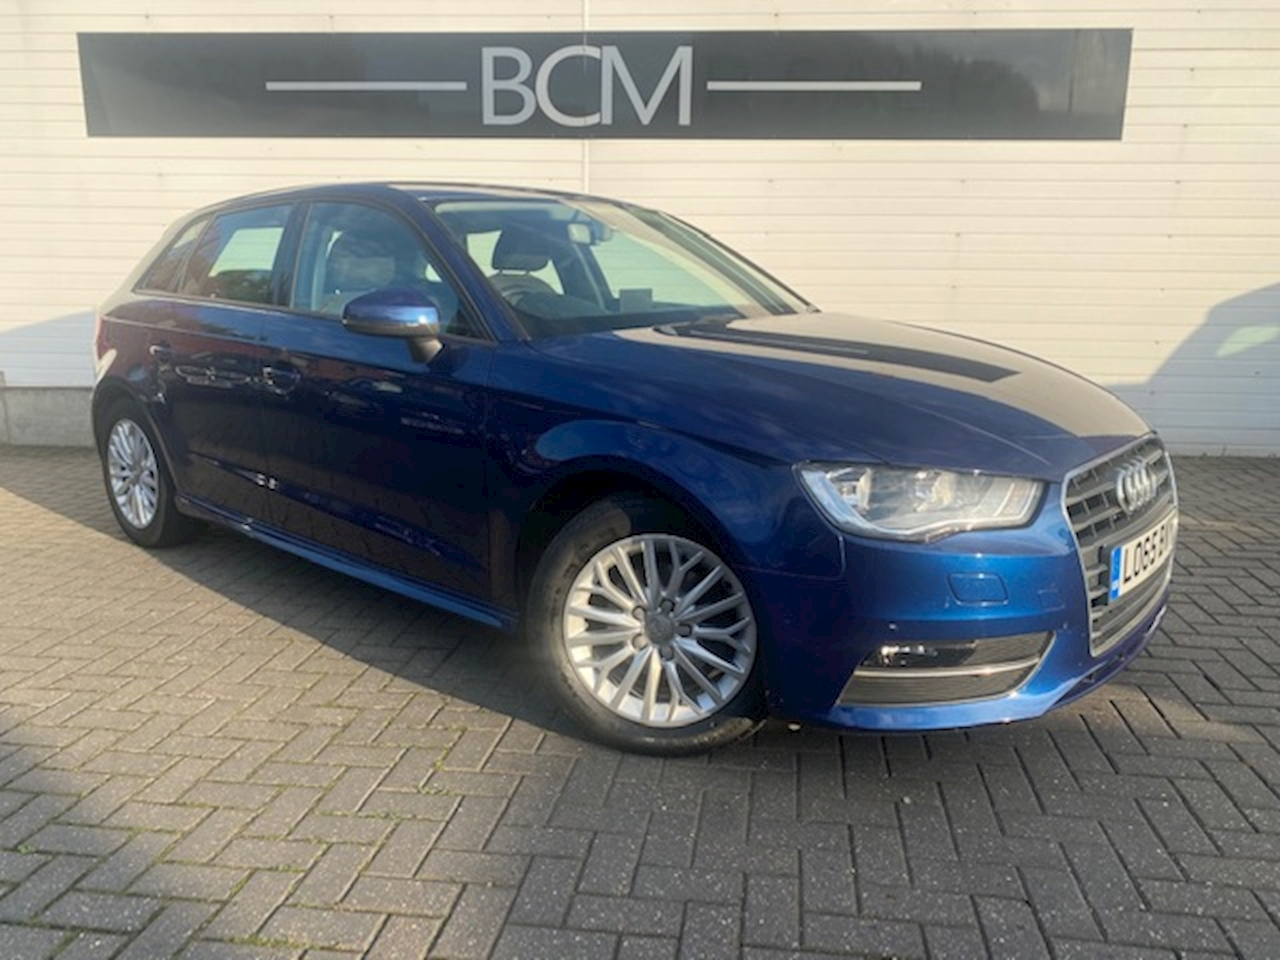 A3 SE Technik Sportback 1.6 Manual Diesel